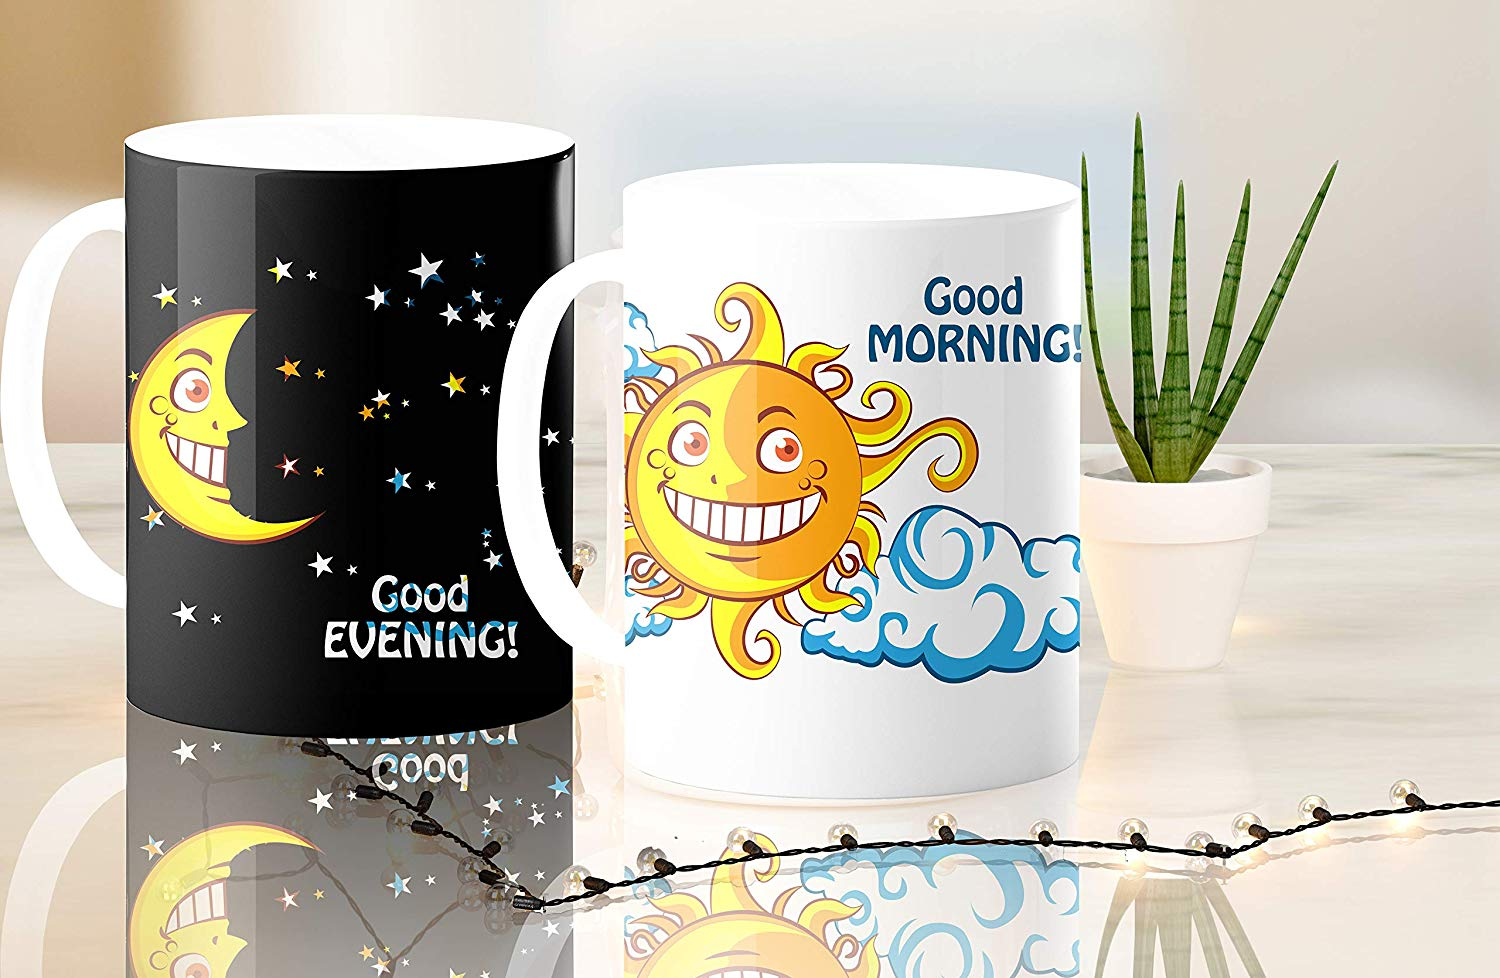 Heat Sensitive Color Changing Coffee Mug Funny Coffee Cup NightDay MoonSun Design Funny Gift Idea B07D223C62 8